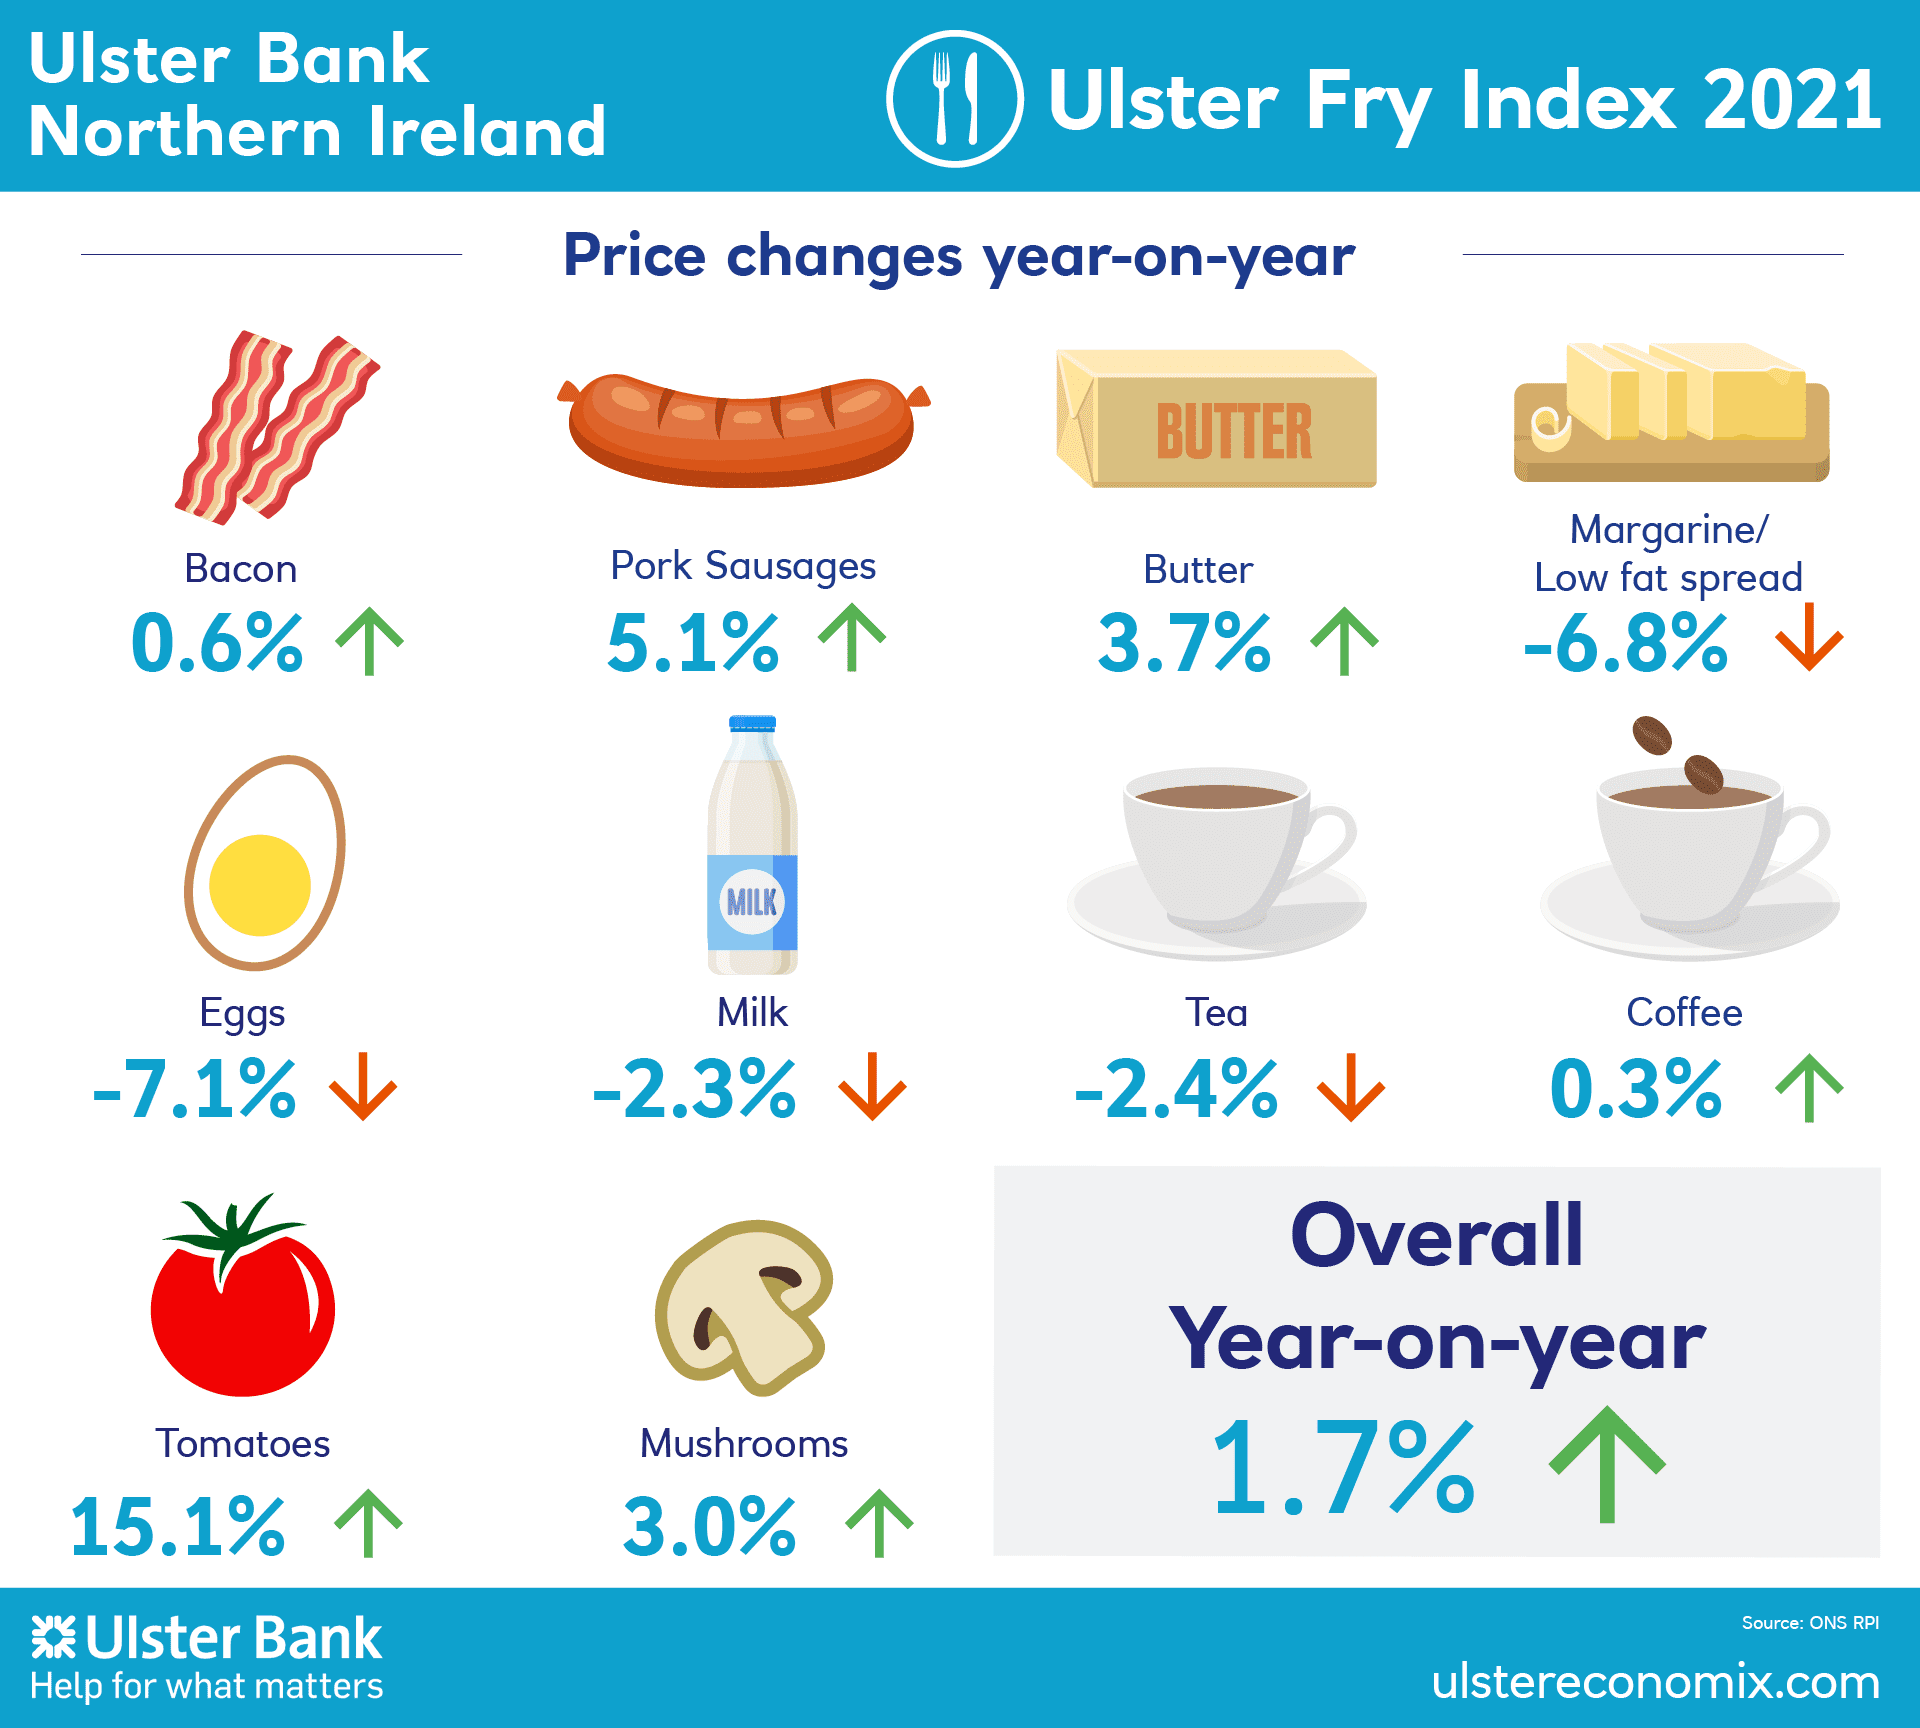 Ulster Fry Index